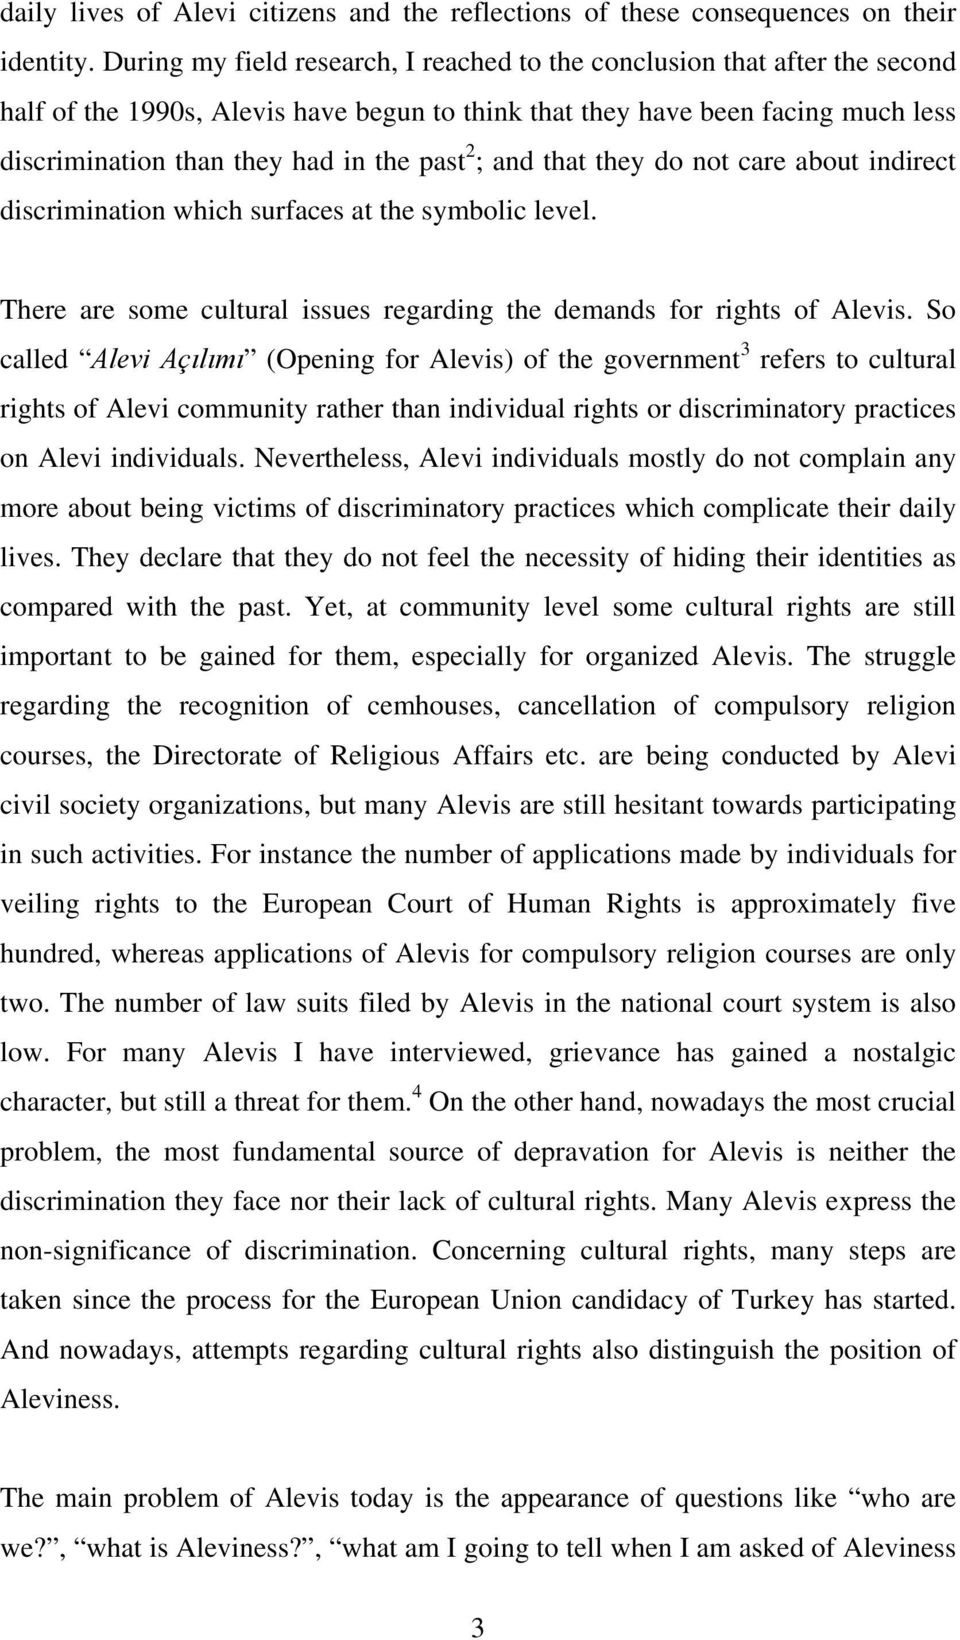 2 ; and that they do not care about indirect discrimination which surfaces at the symbolic level. There are some cultural issues regarding the demands for rights of Alevis.